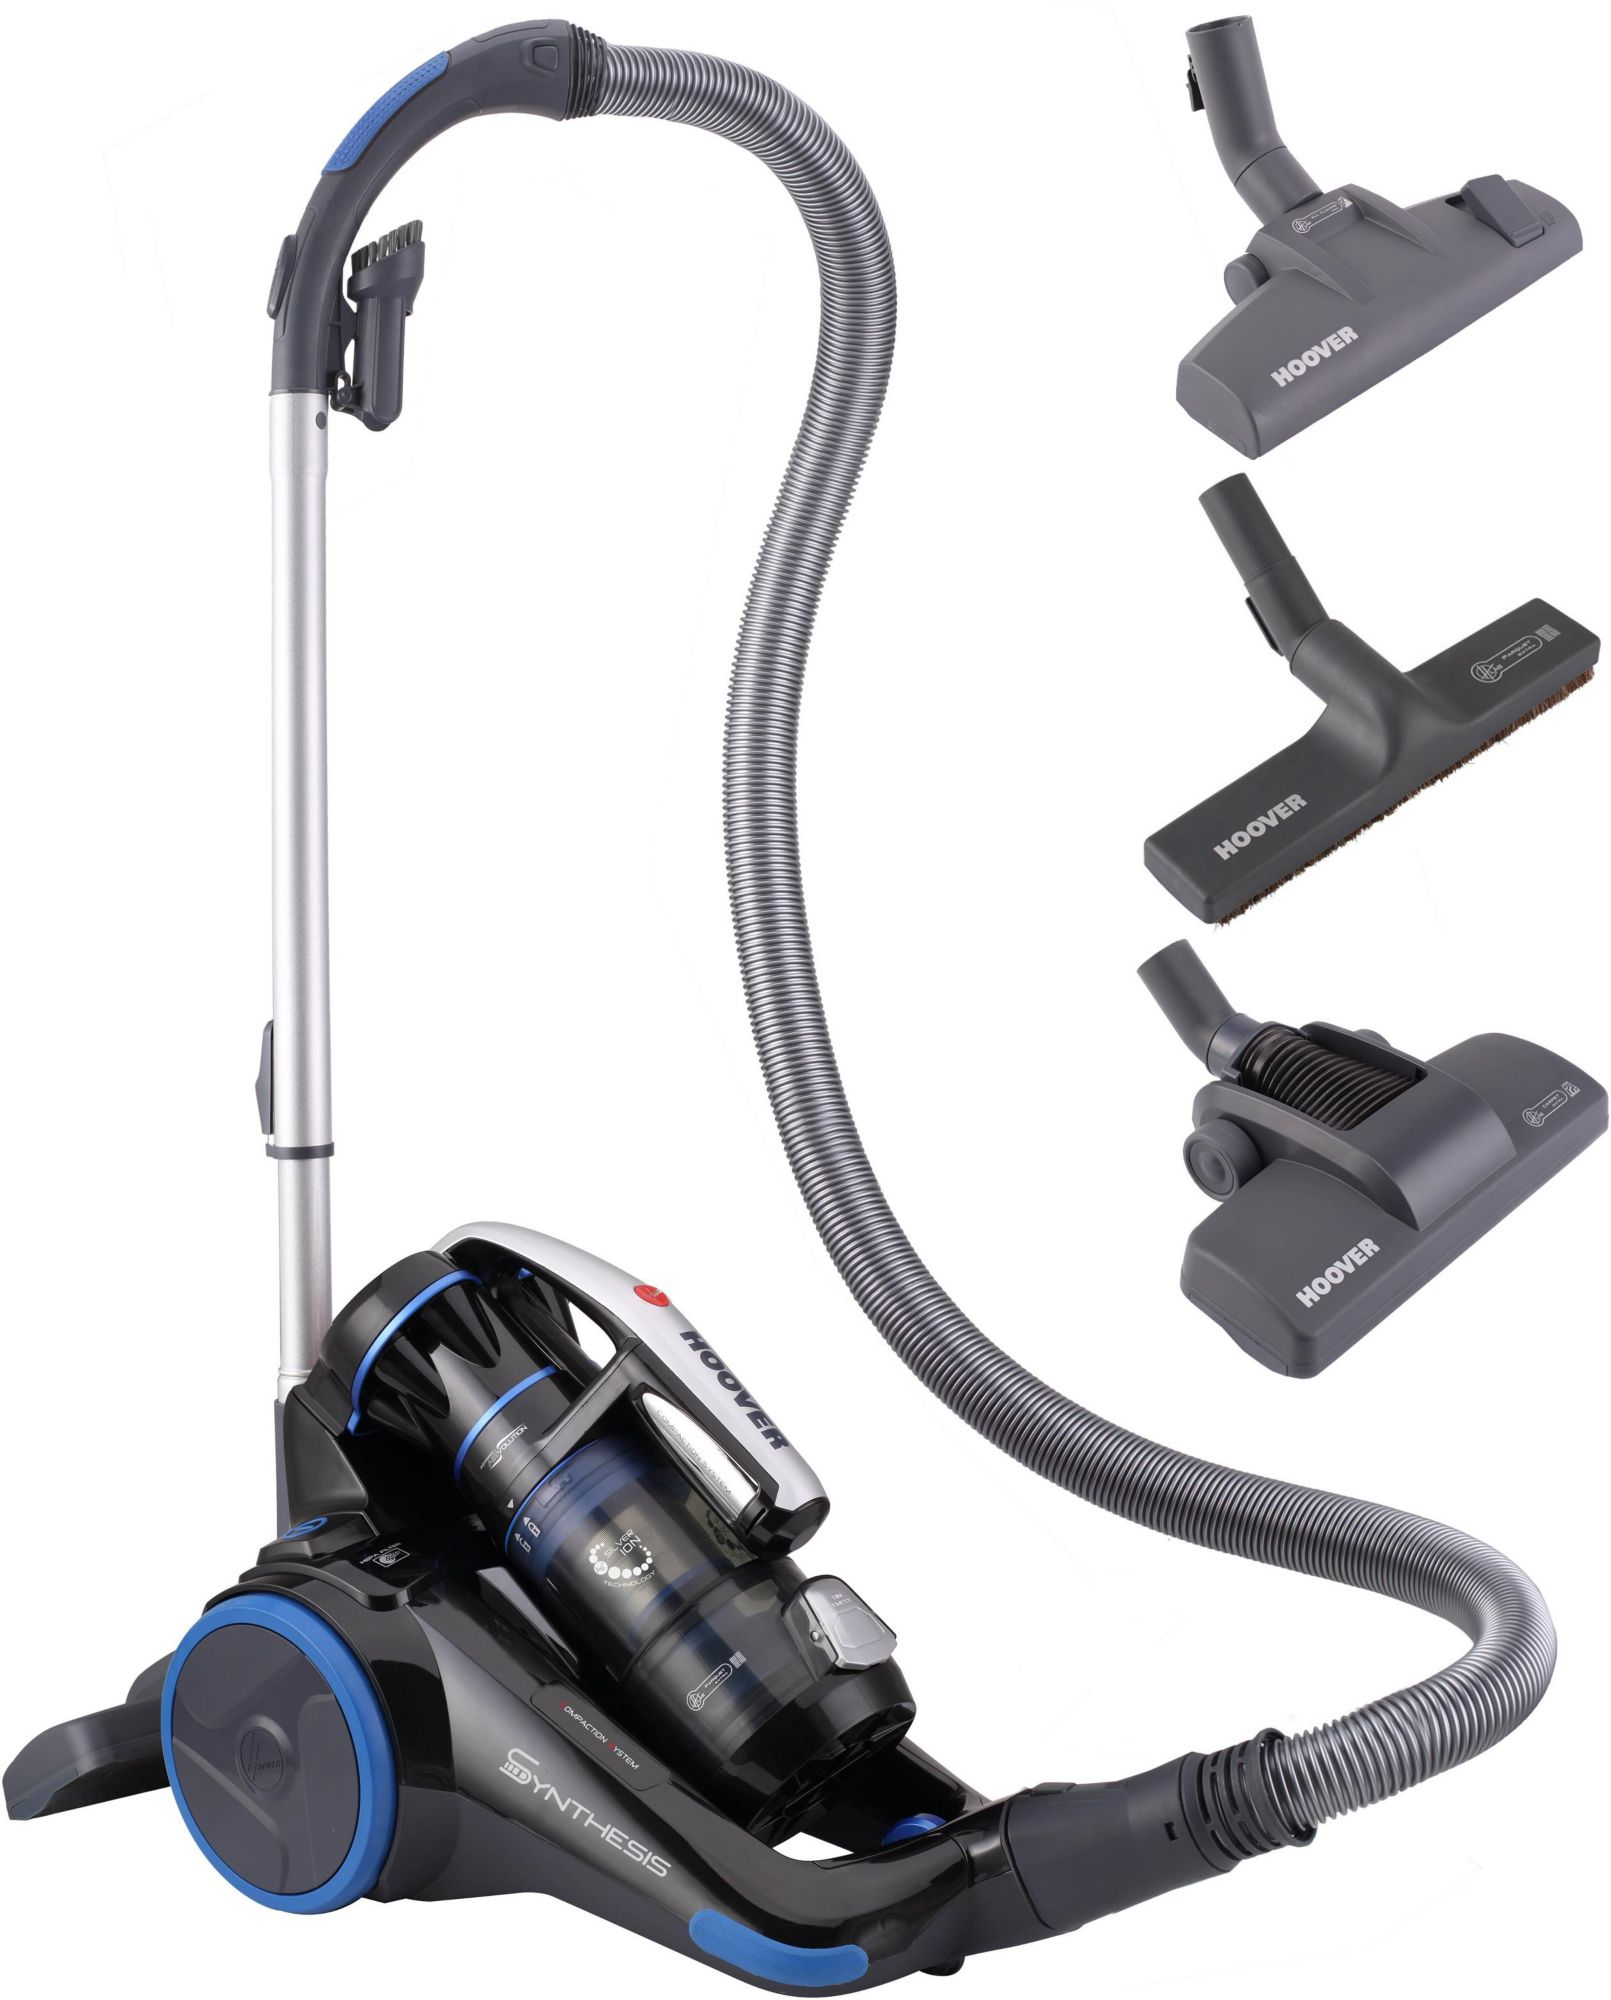 HOOVER Hoover Bodenstaubsauger Synthesis ST71_ST10, beutellos, Energieklasse A